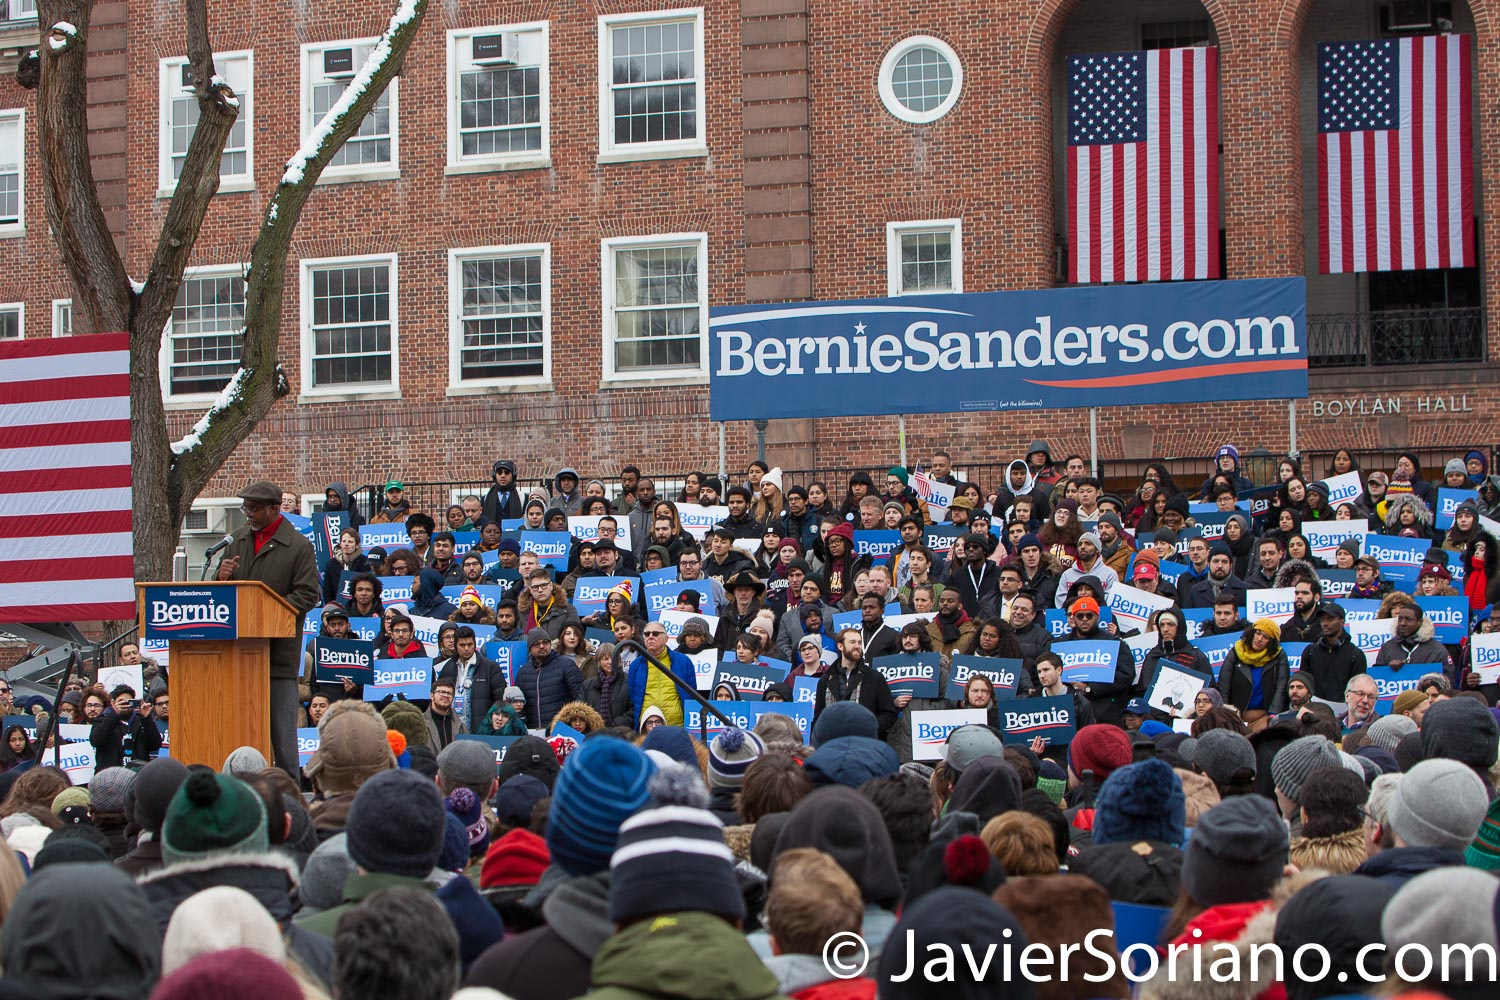 Saturday, March 2, 2019. Brooklyn College. Brooklyn, New York City. South Carolina Representative Terry Alexander speaks to the more than 10 thousand supporters of U.S. Senator and presidential candidate Bernie Sanders. This was the first event of his 2020 presidential campaign. Although it was cold, people were happy to be there. Photo by Javier Soriano/www.JavierSoriano.com